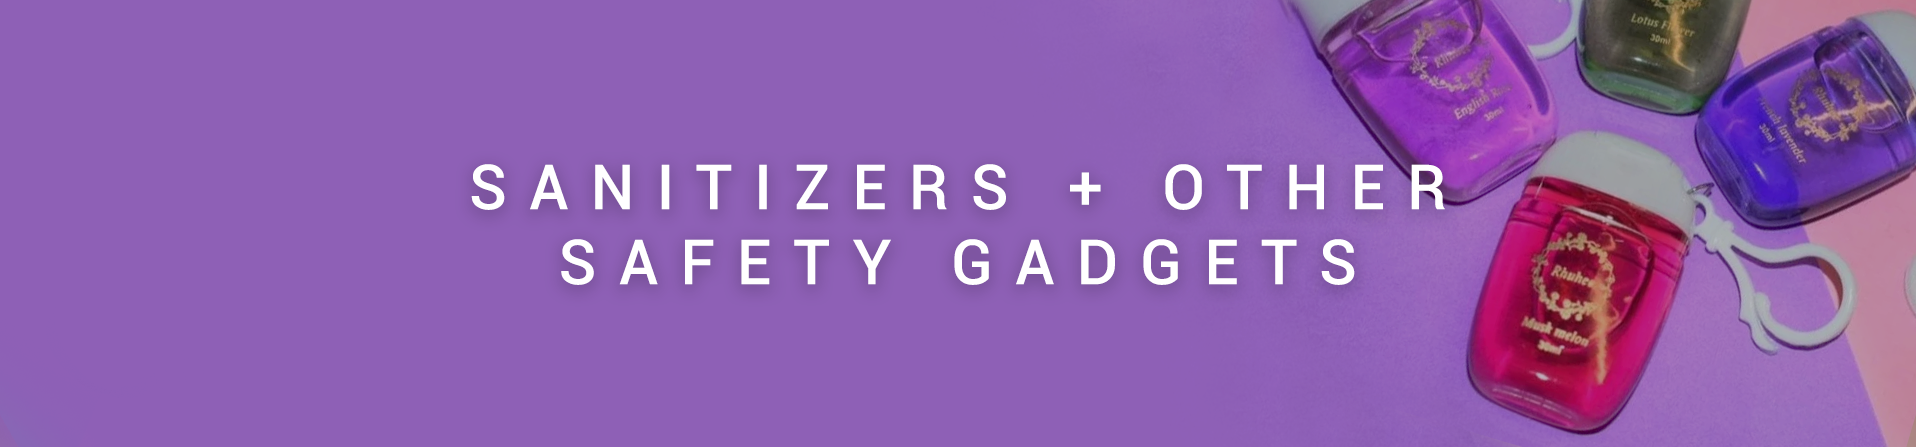 Sanitizers + Other Safety Gadgets